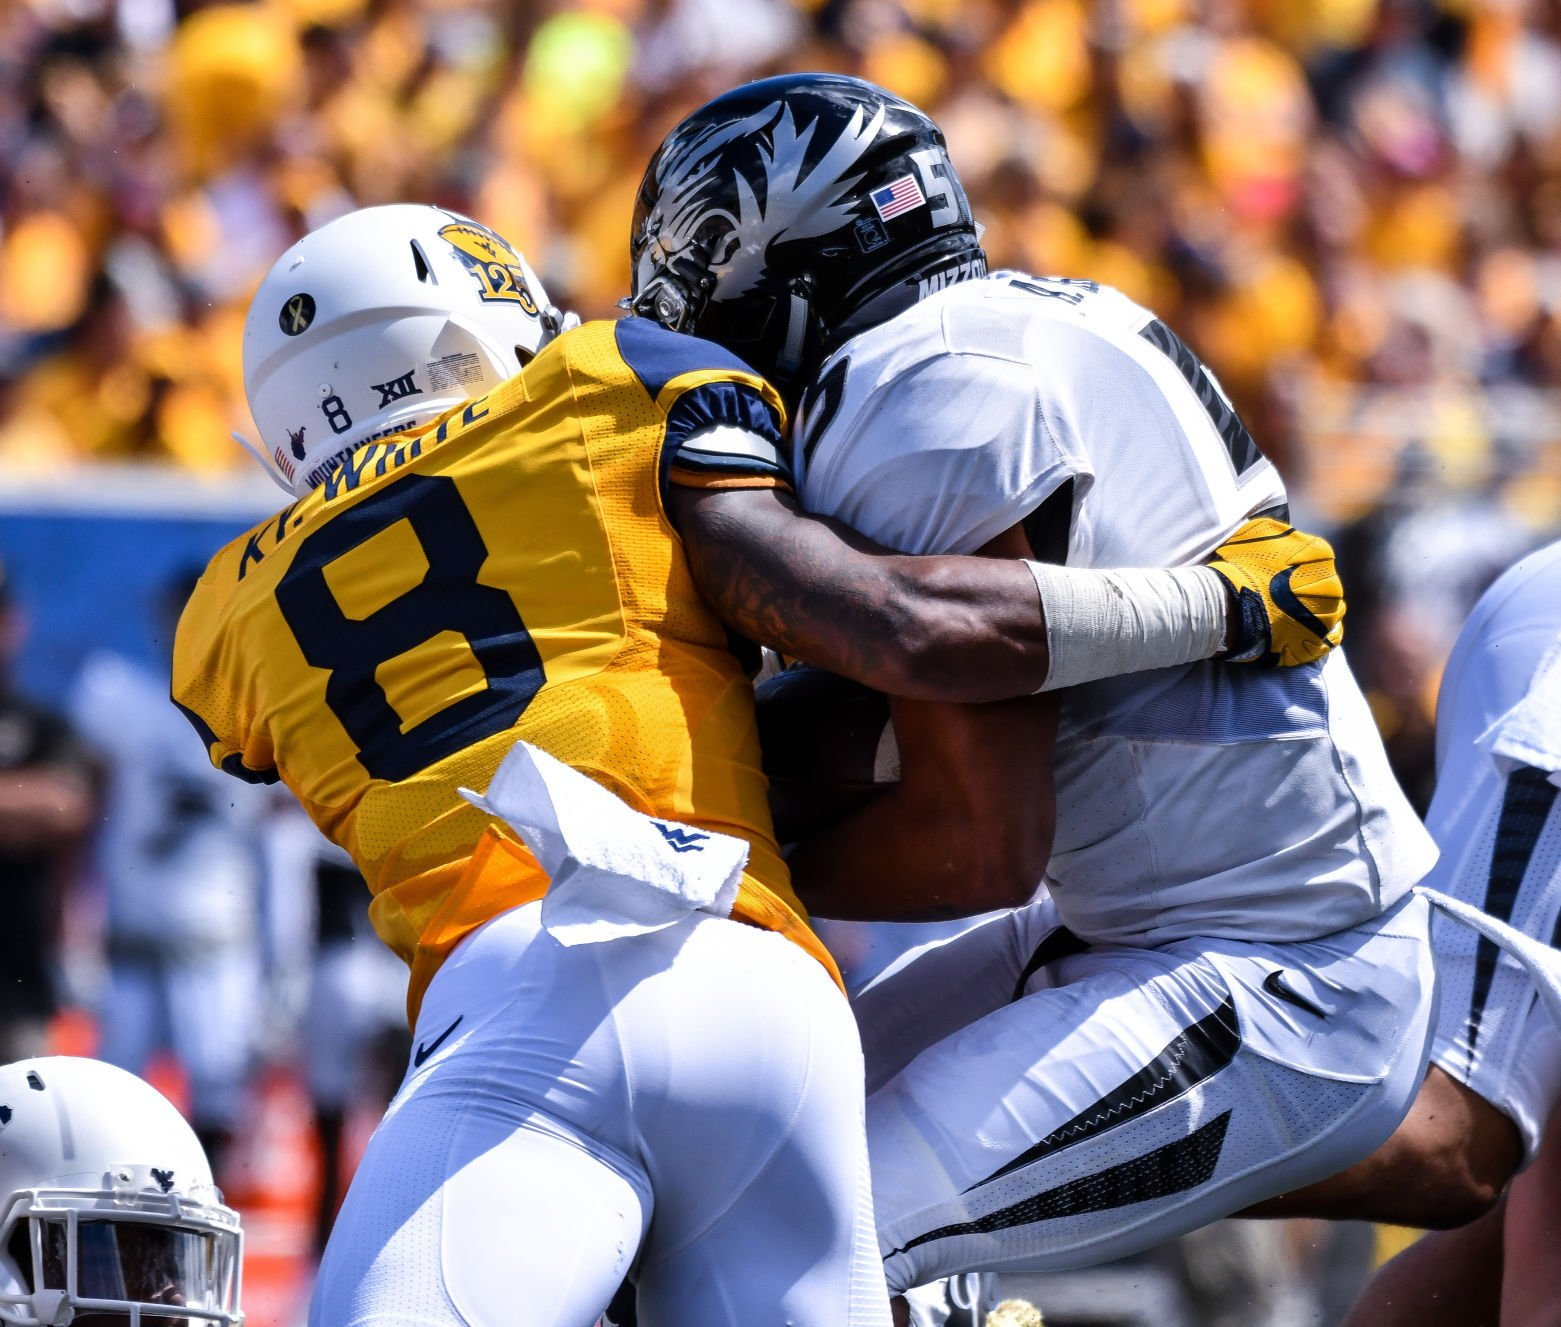 WVU falls to Virginia Tech 31-24